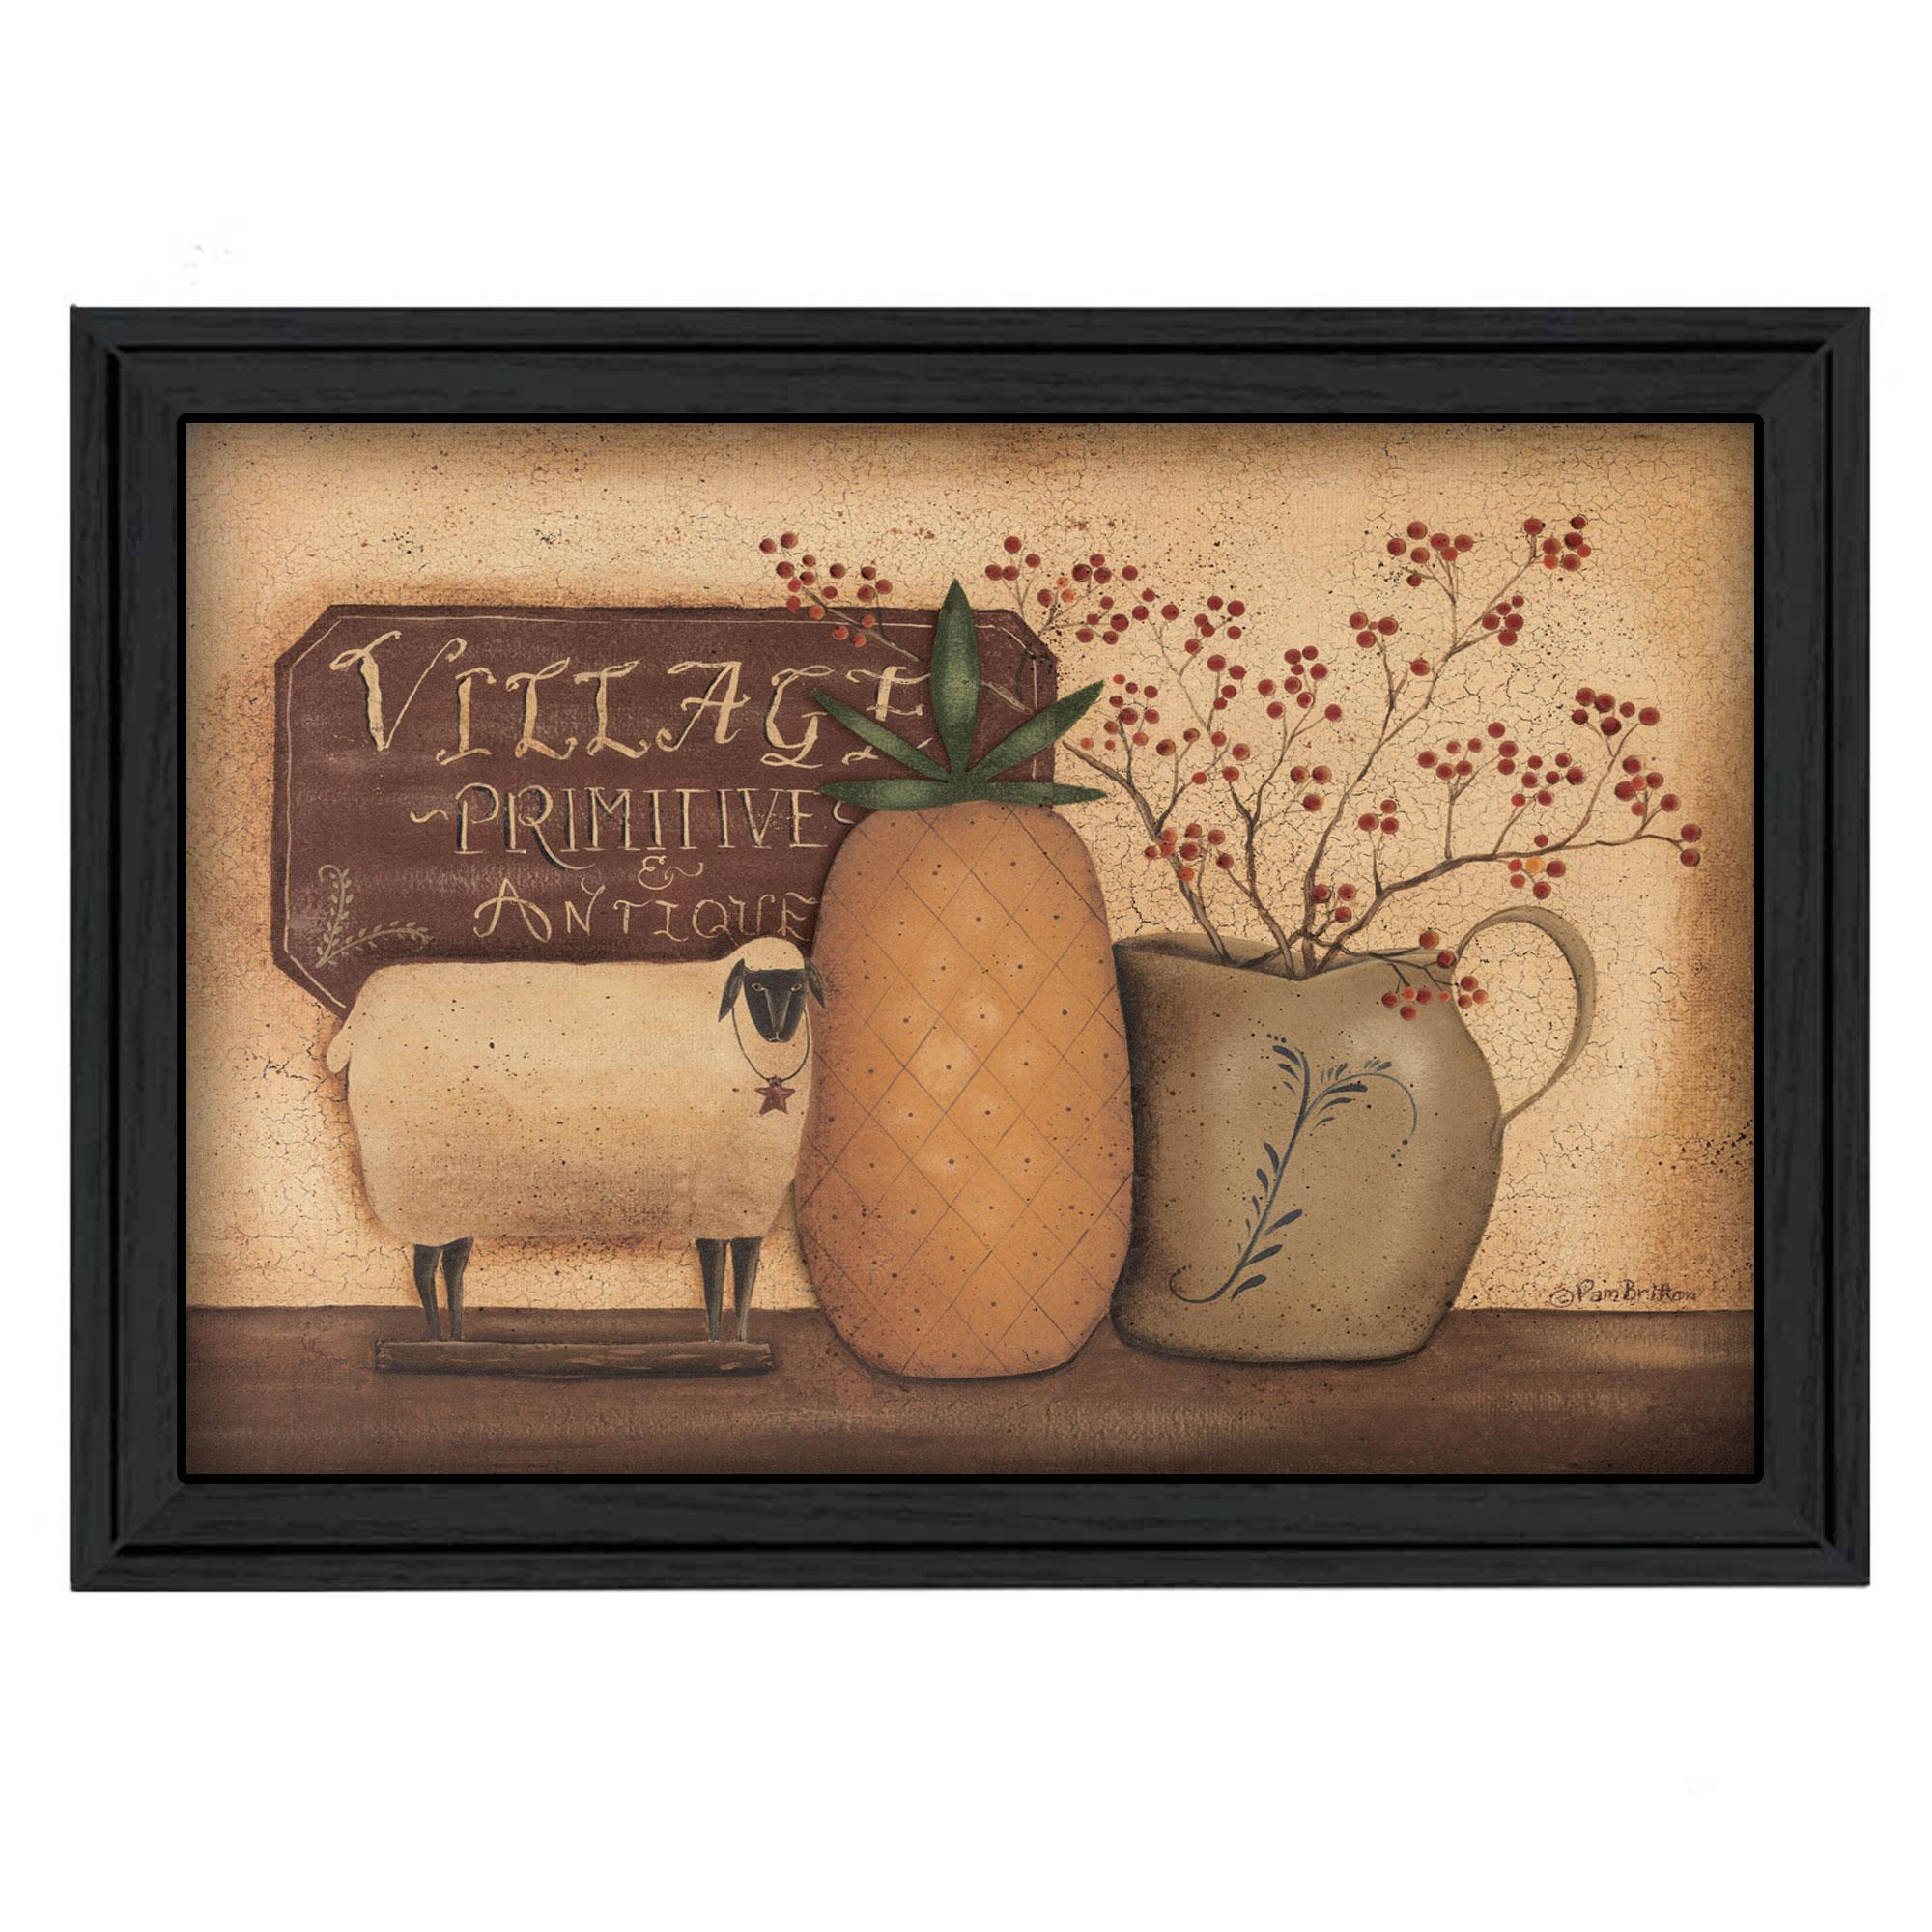 """Country Necessities"" by Pam Britton Printed Framed Wall Art - image 2 de 2"